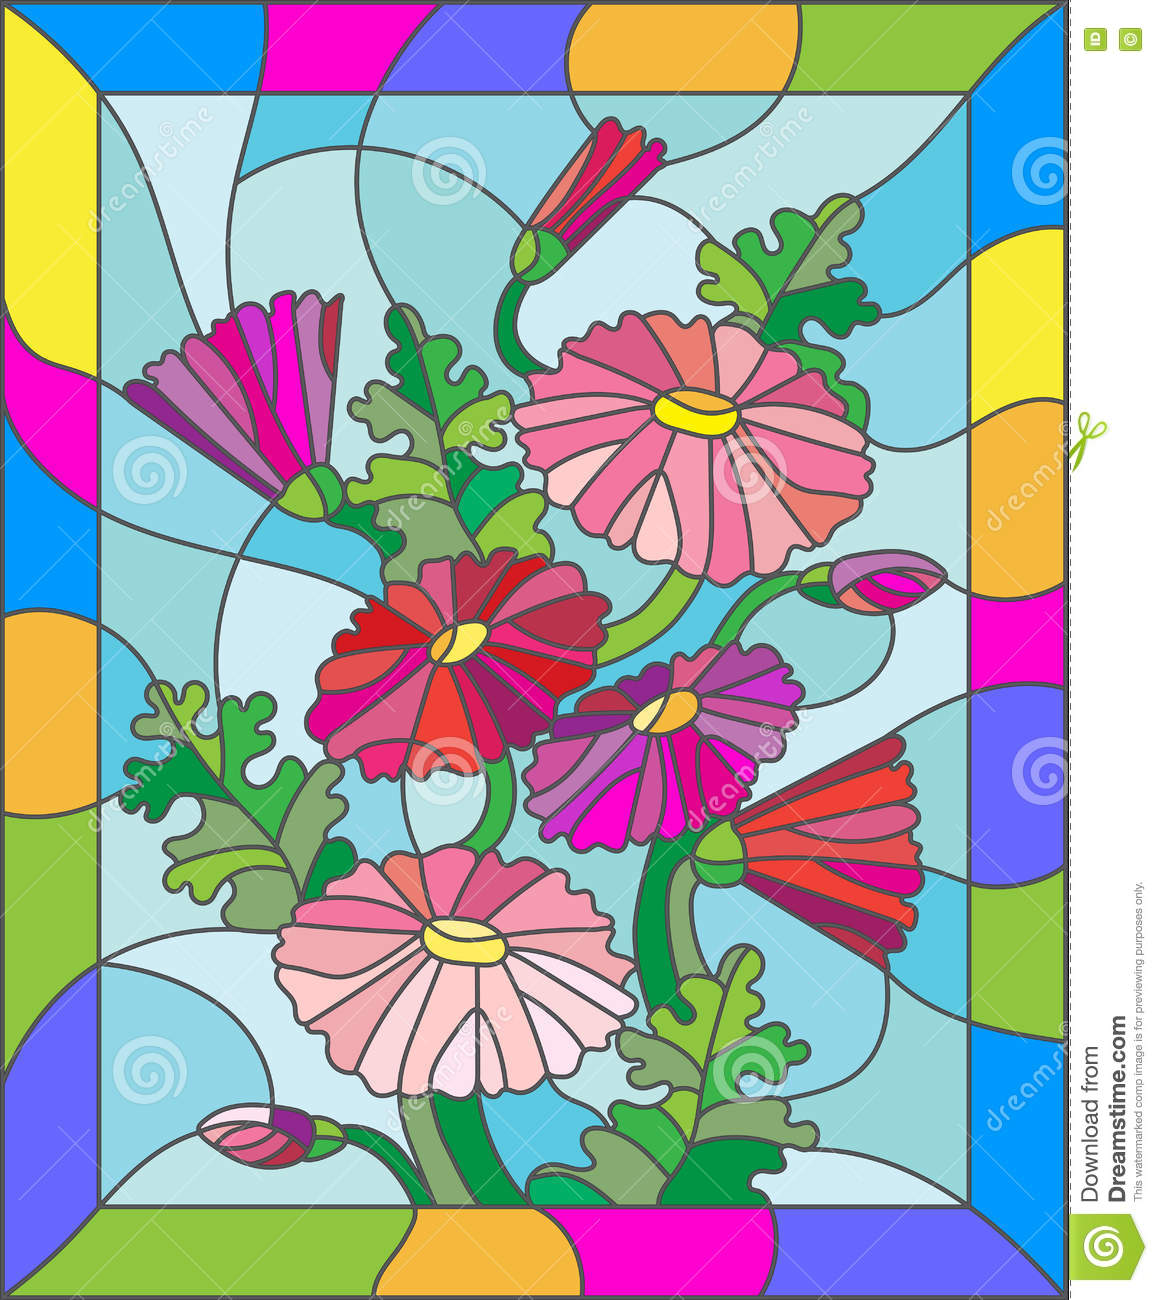 Stained Glass Illustration Of Abstract Pink Daisies In A Bright